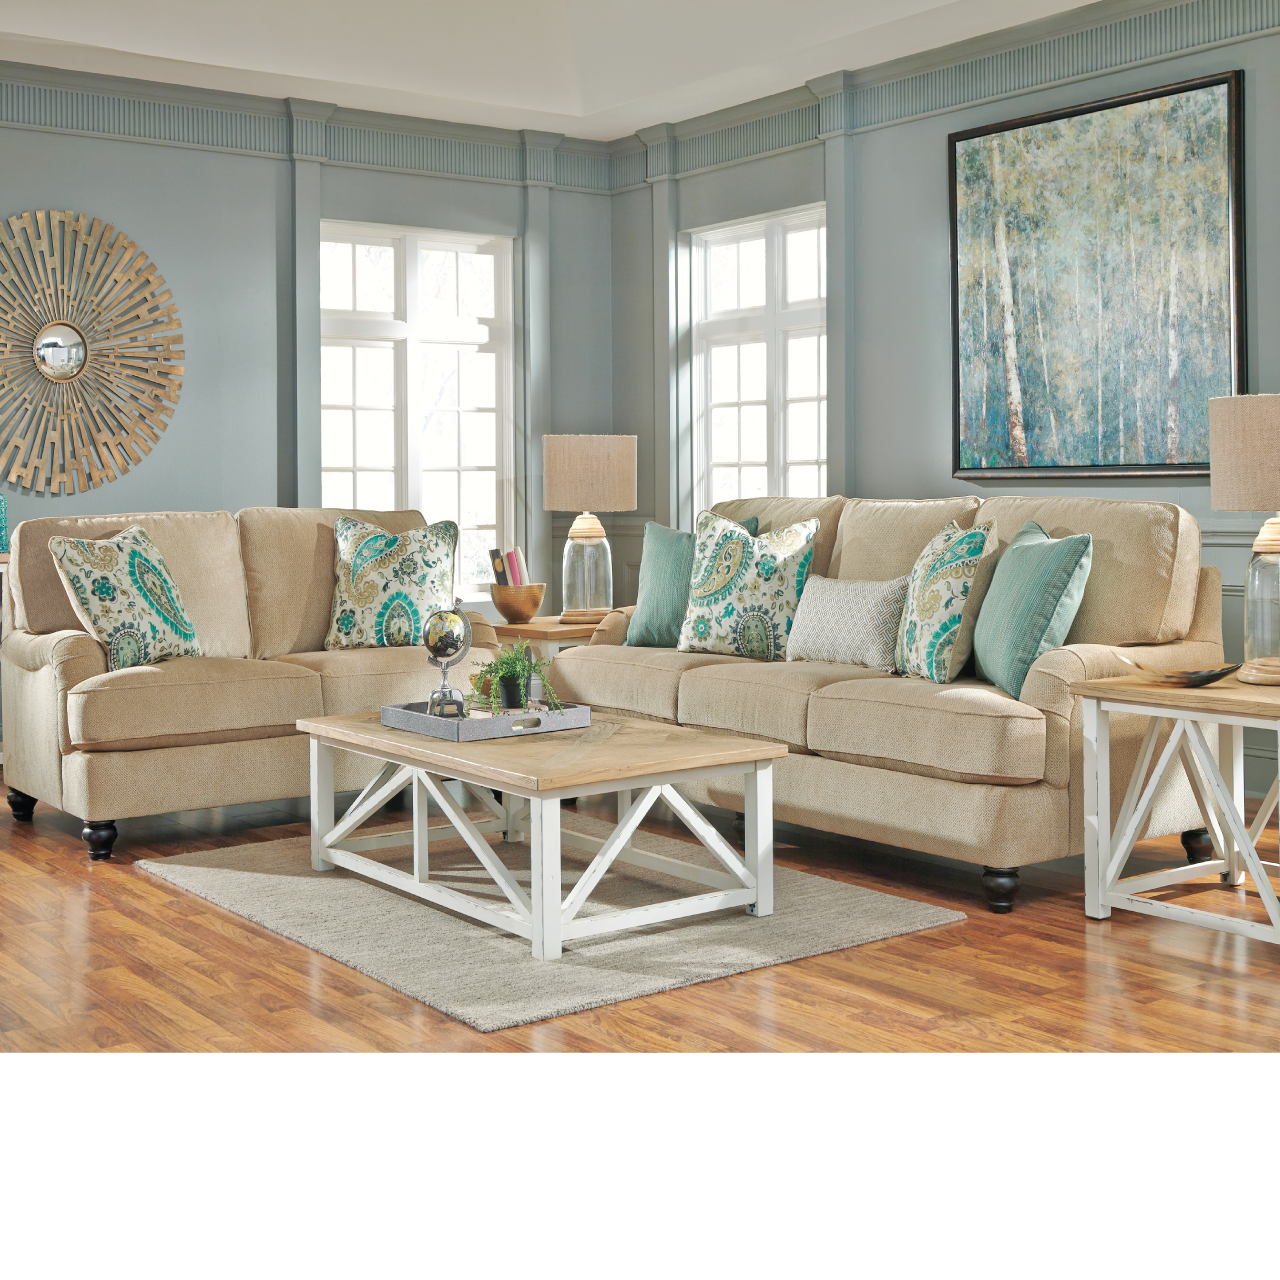 Coastal living room ideas lochian sofa by ashley for Lounge room furniture ideas